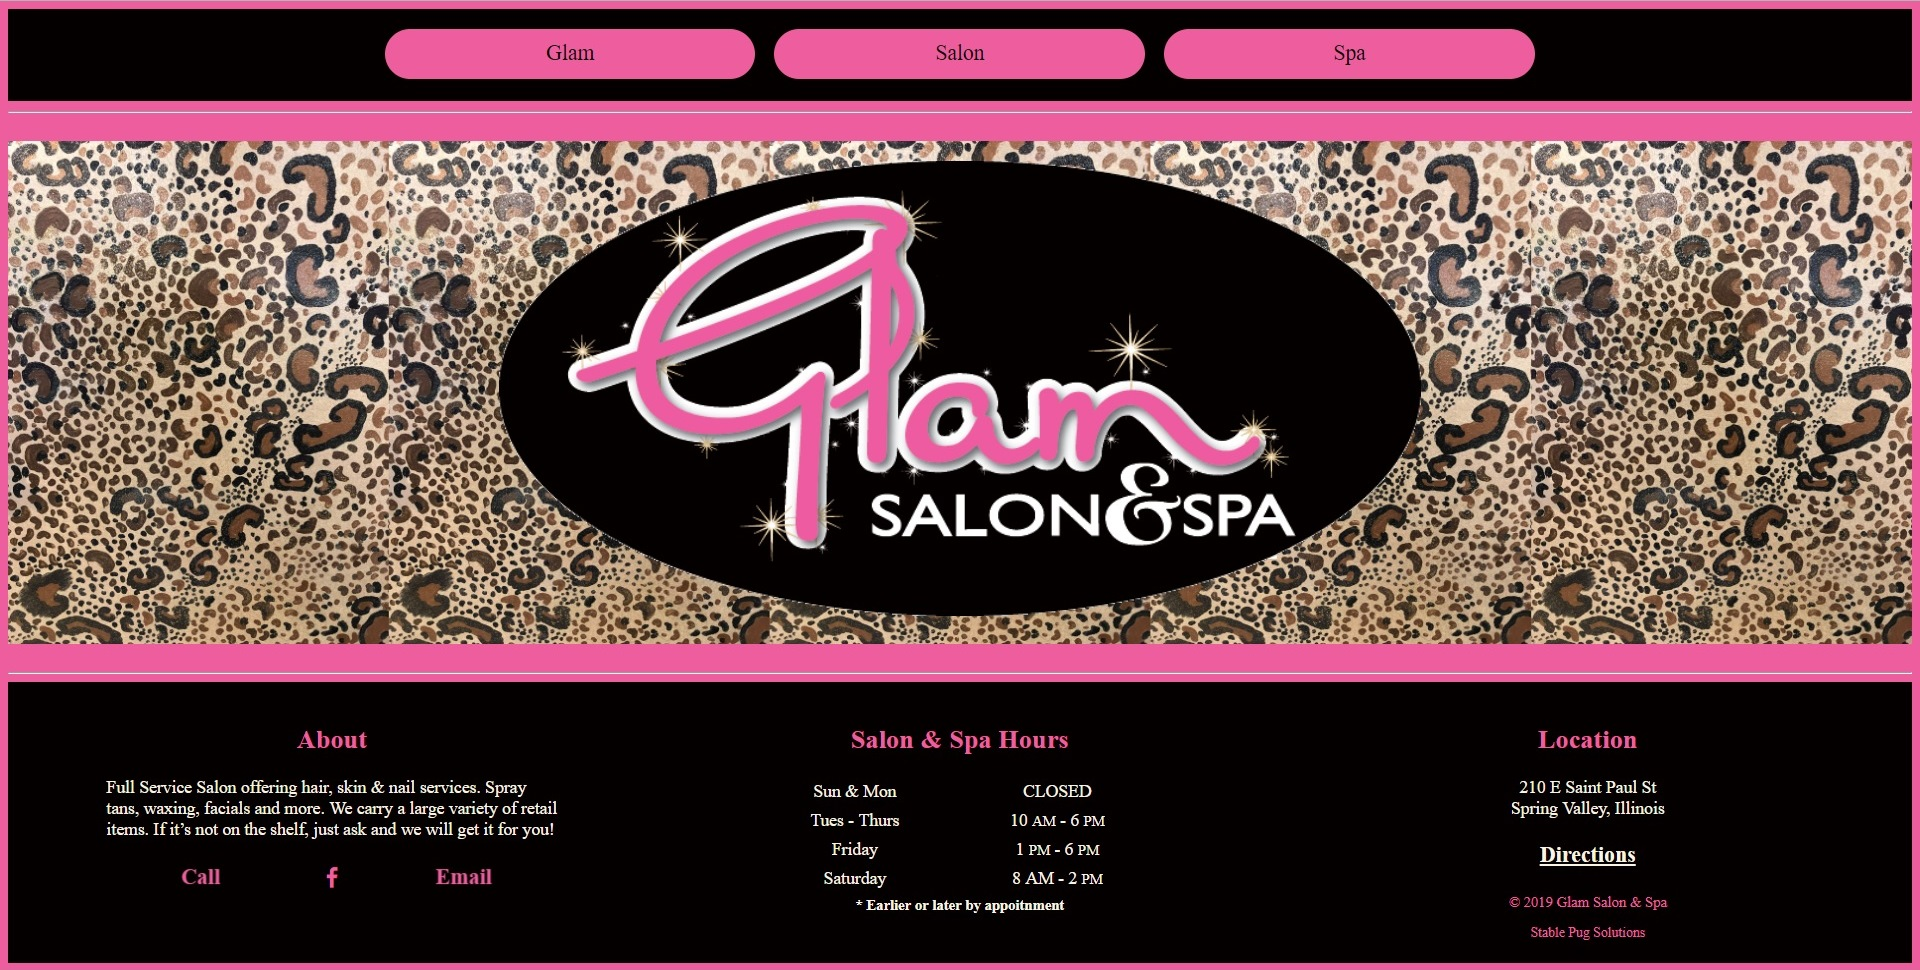 Glam Salon & Spa